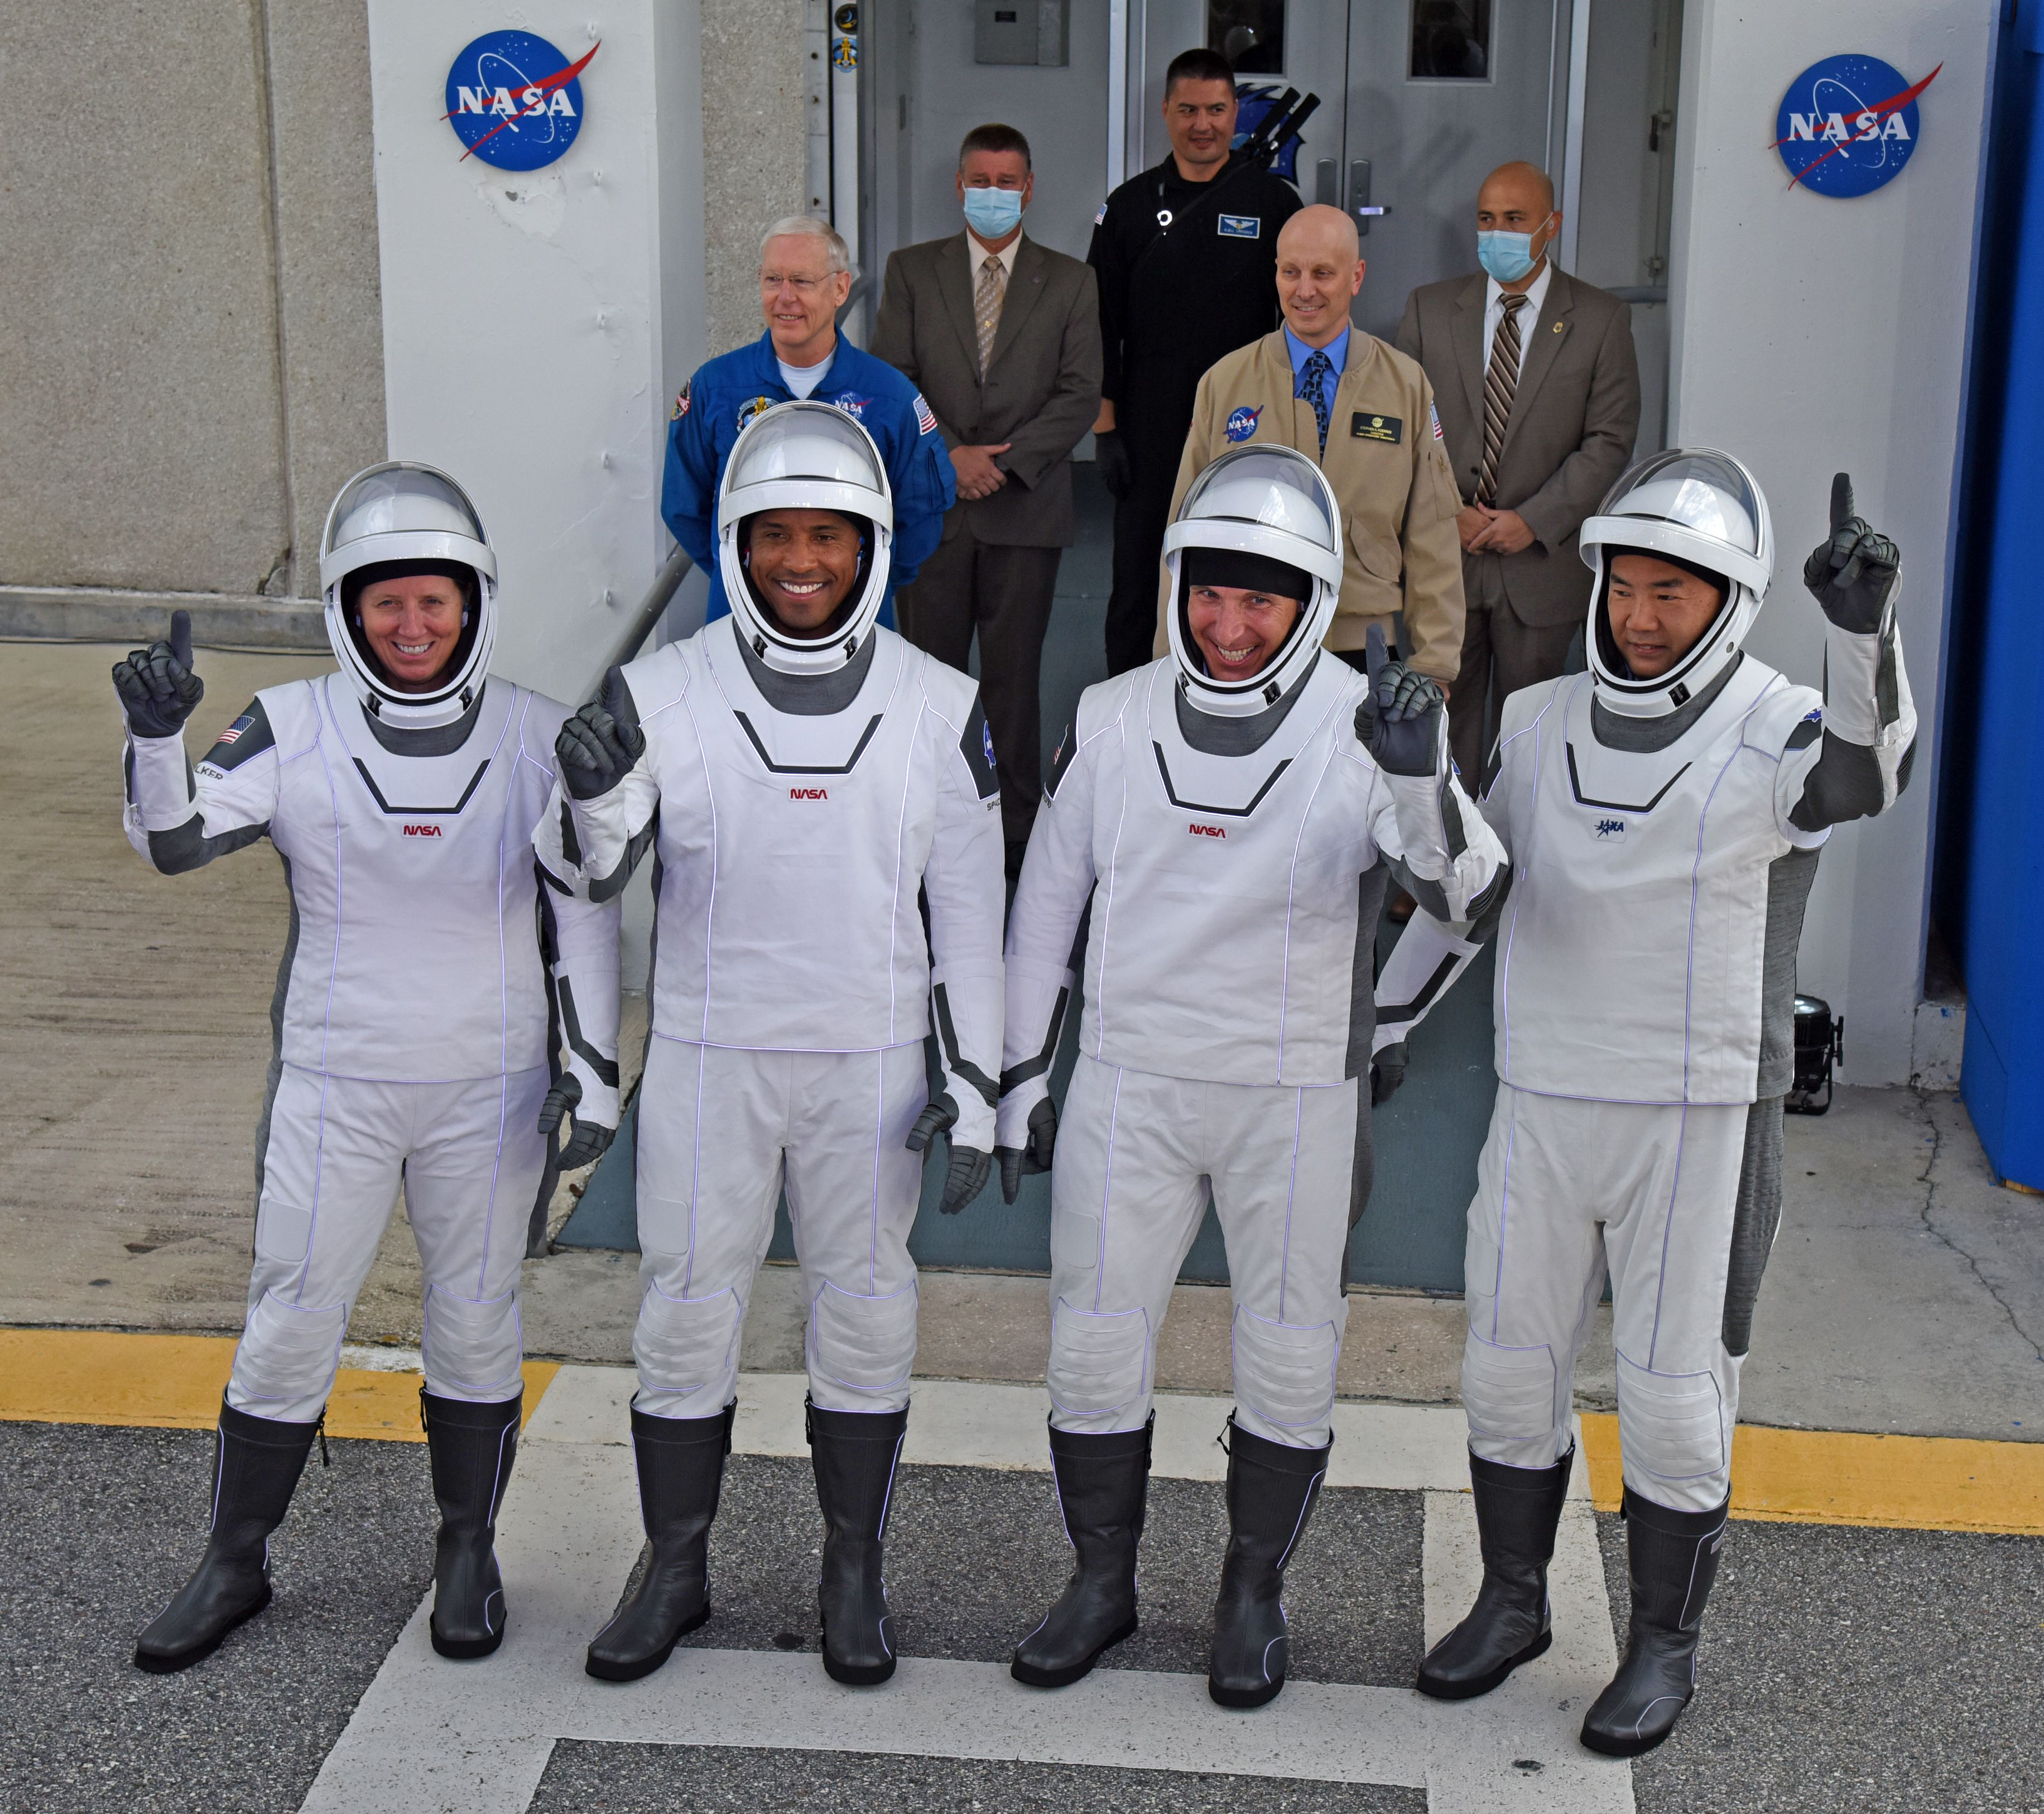 SpaceX astronauts pointing to the sky.